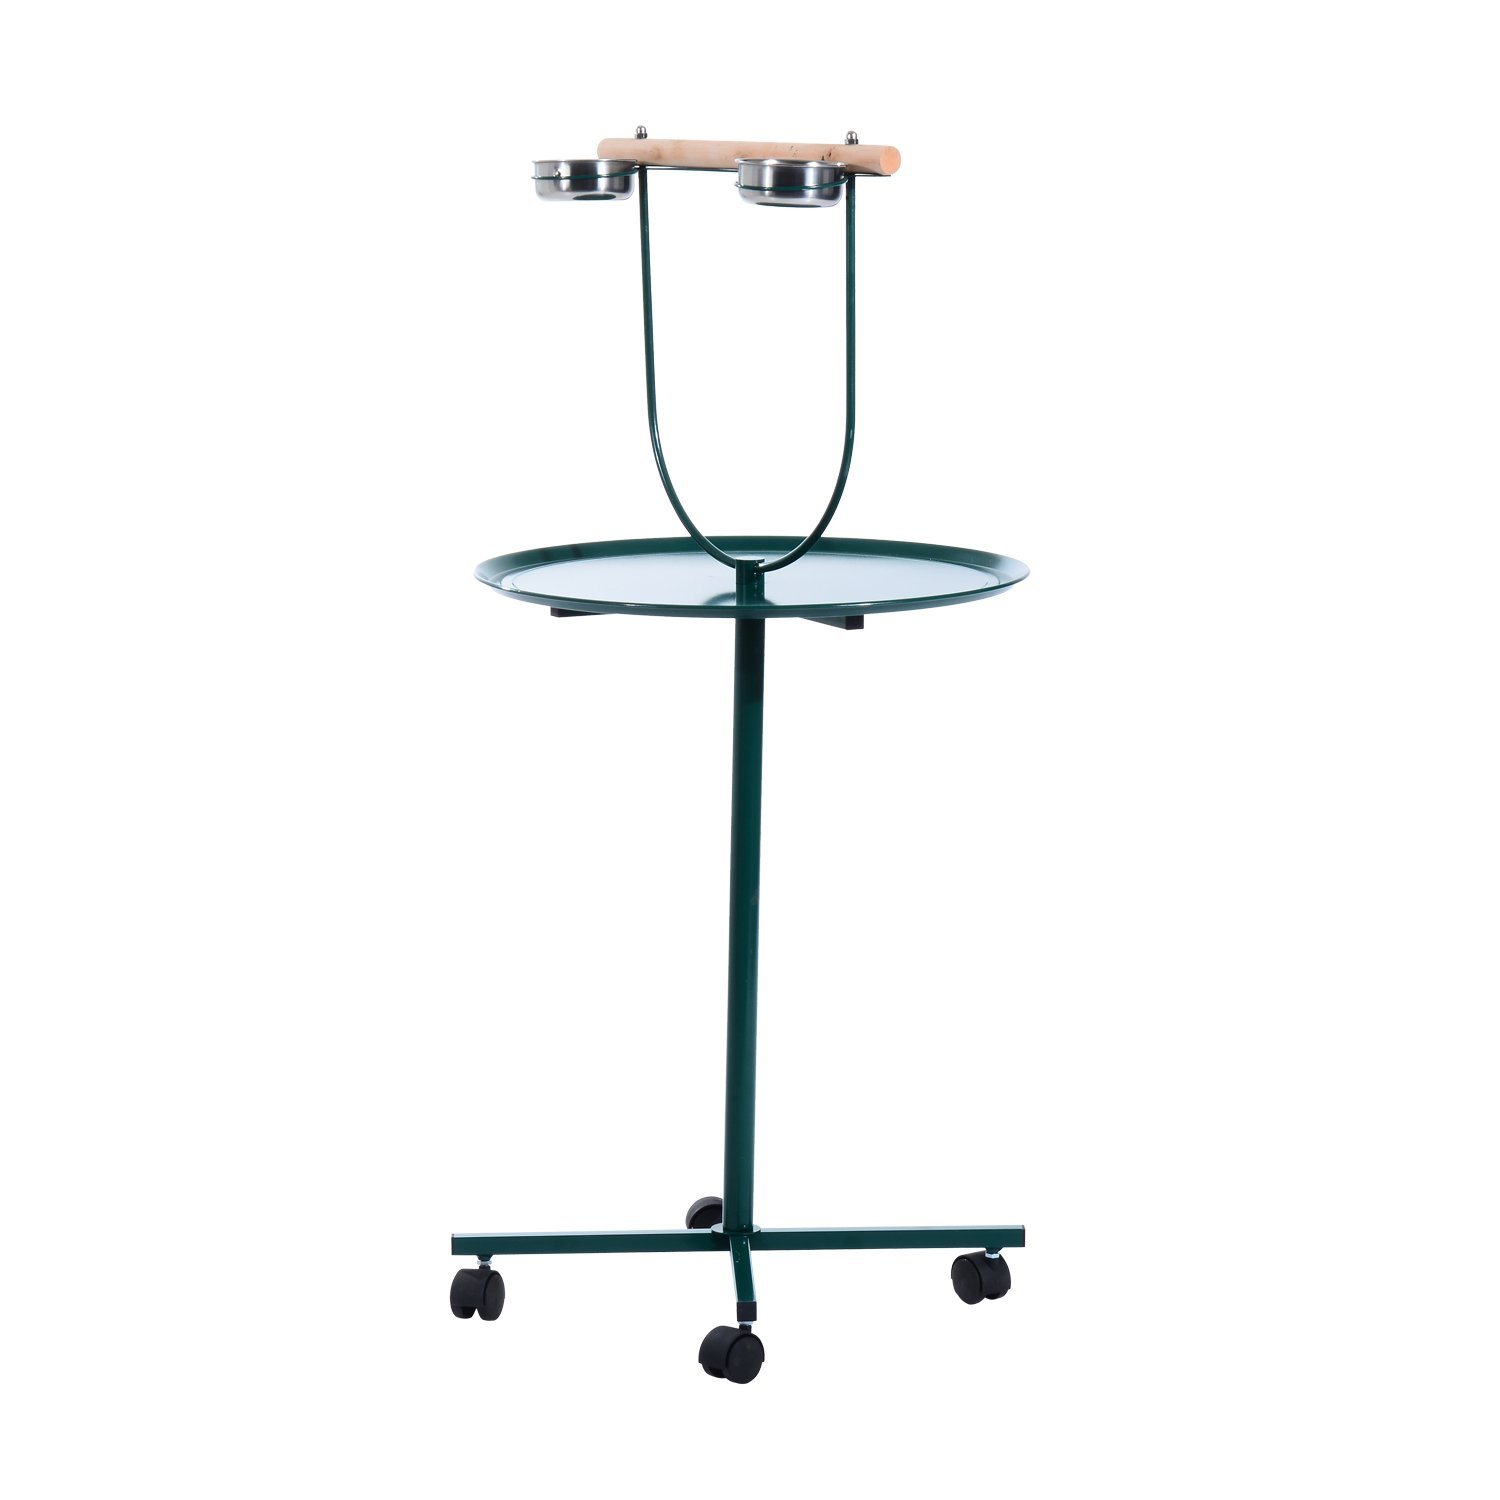 Pawhut 49'' Bird Play Stand w/ Wheels - Green